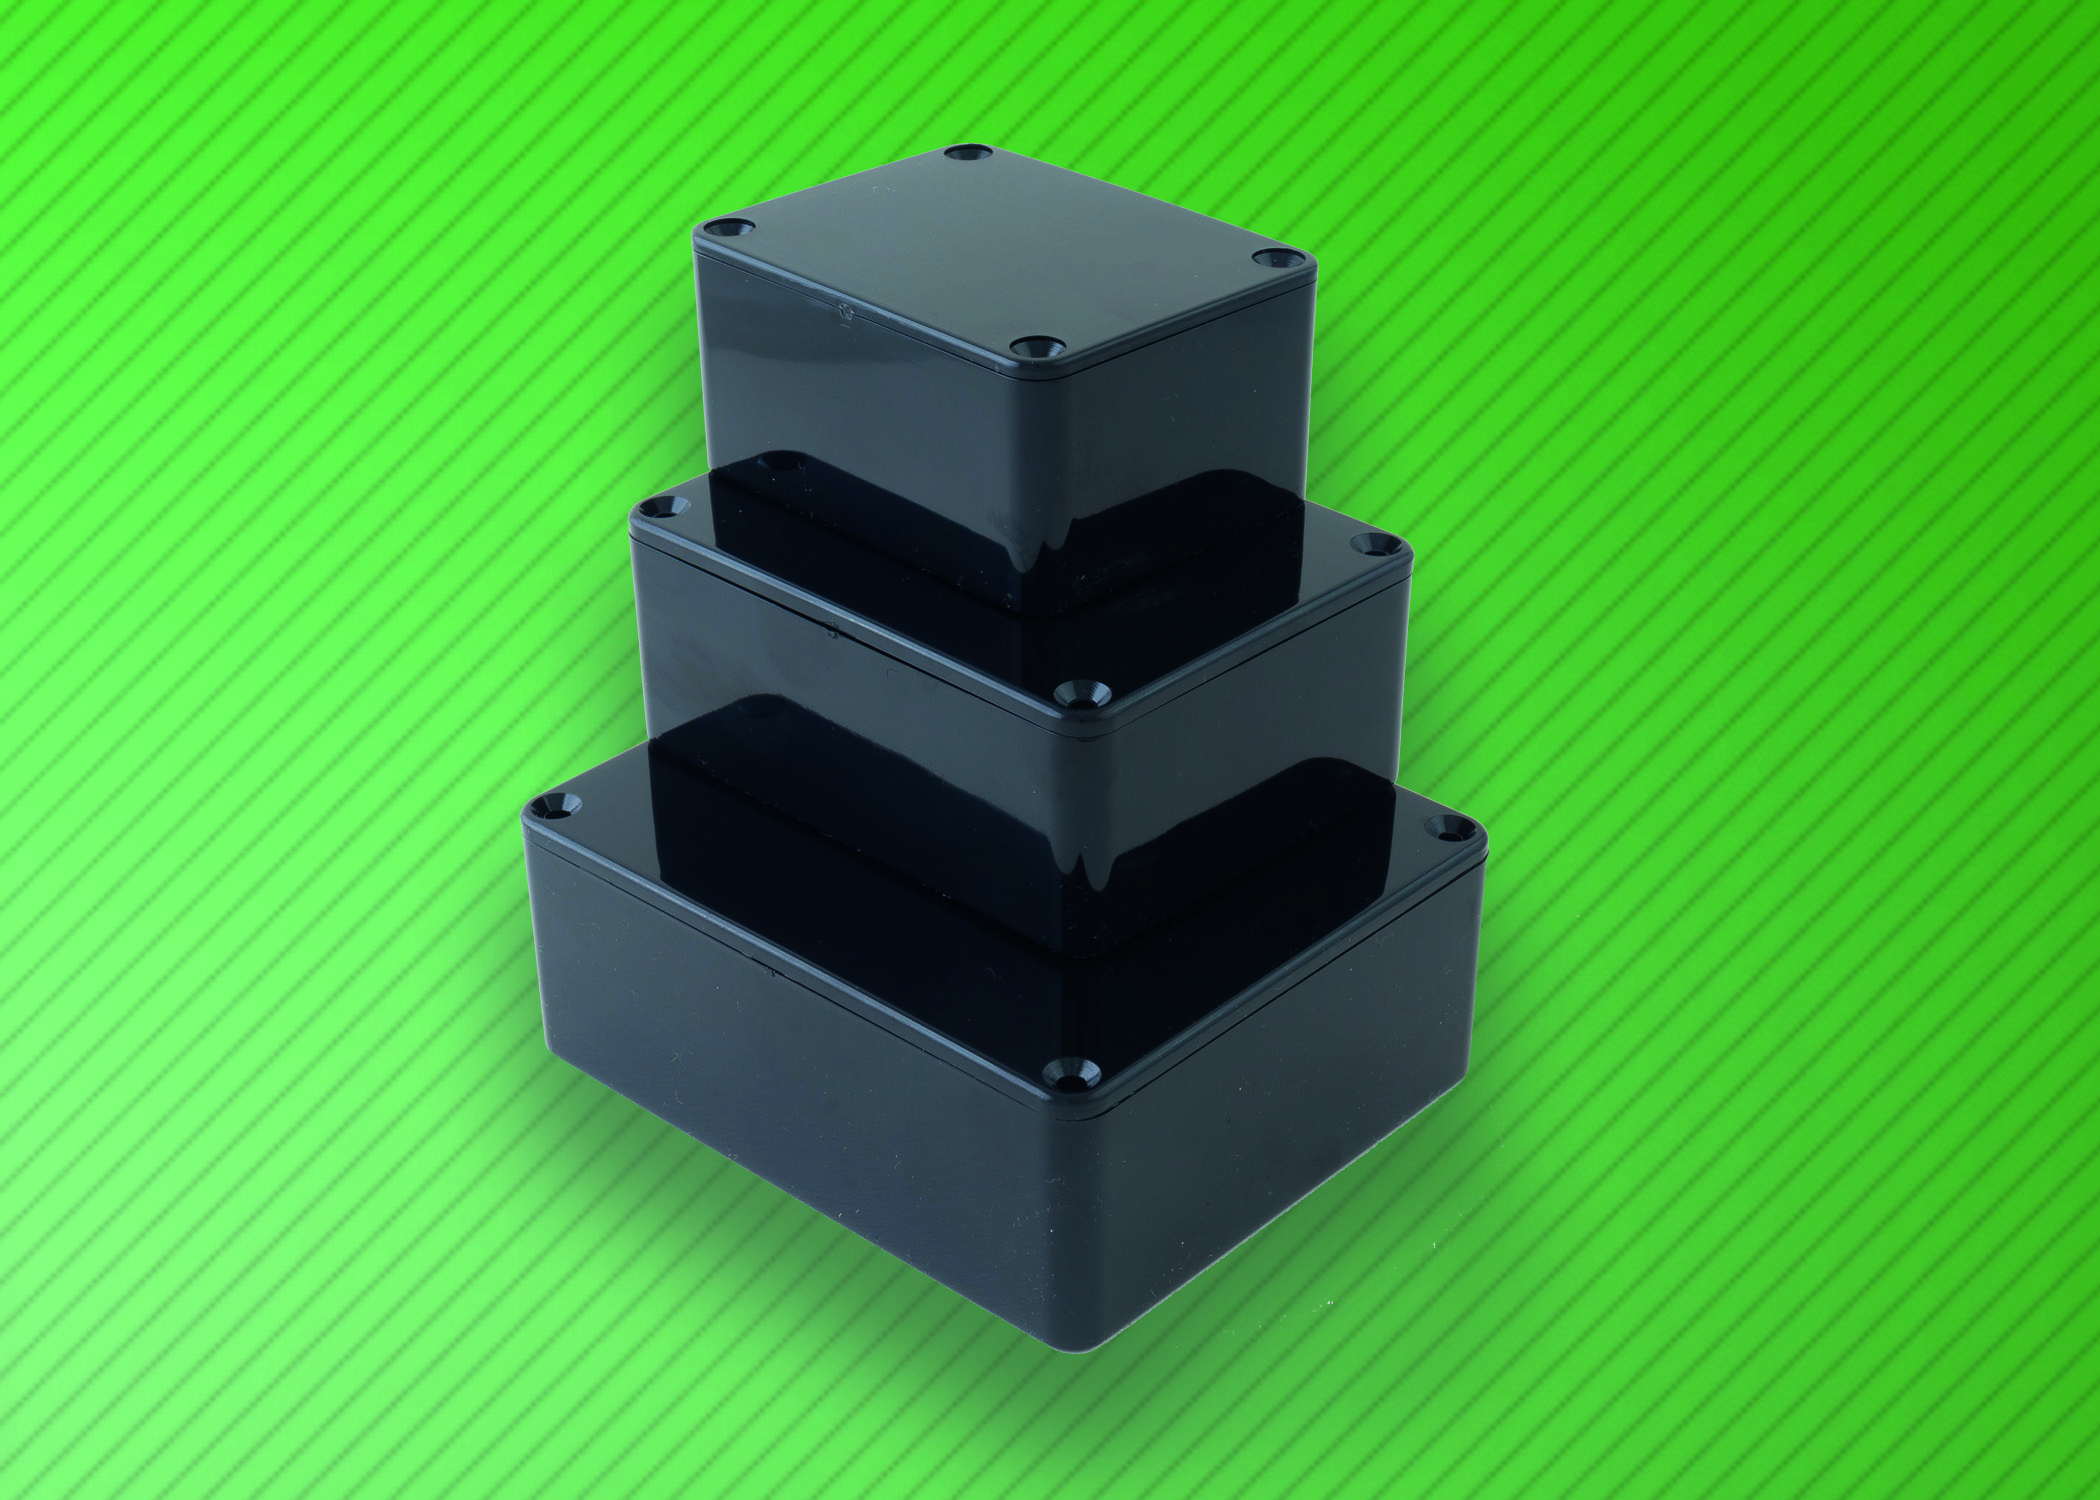 Bcl S Range Of Enclosures Include Multipurpose And Small Bo With Lids In Abs For Maximum Strength General Purpose Matt Finish